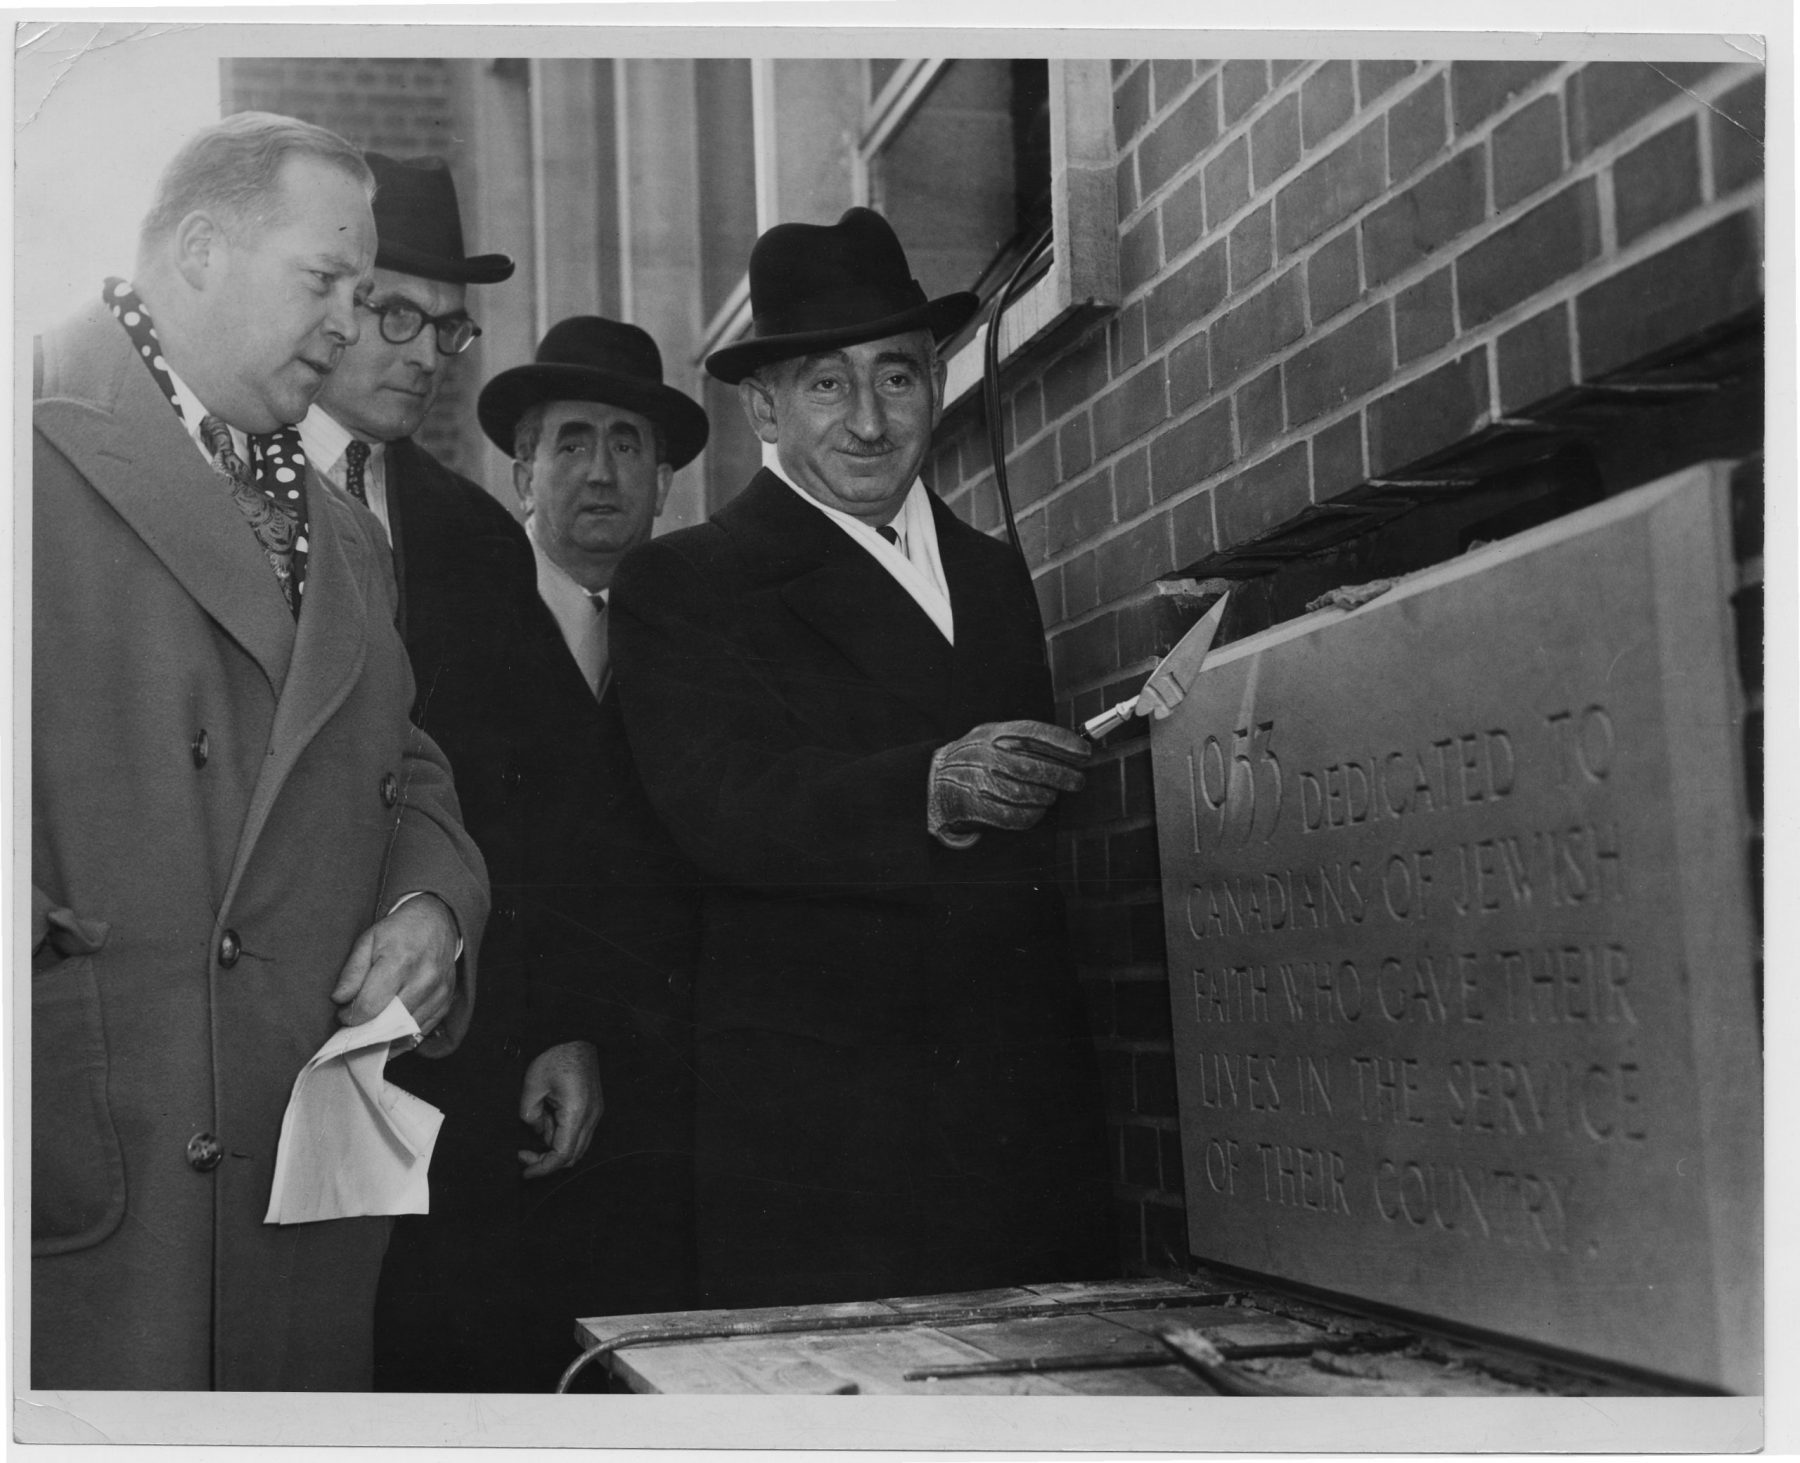 """The cornerstone dedication ceremony for the Bloor and Spadina YM-YWHA branch, held on 3 February 1953. By the end of the 1950s, the """"Y"""" provided programming and services for all ages, and after moving to this new building the organization expanded its non-athletic programming.   OJA, fonds 61, series 2-2, file 38."""